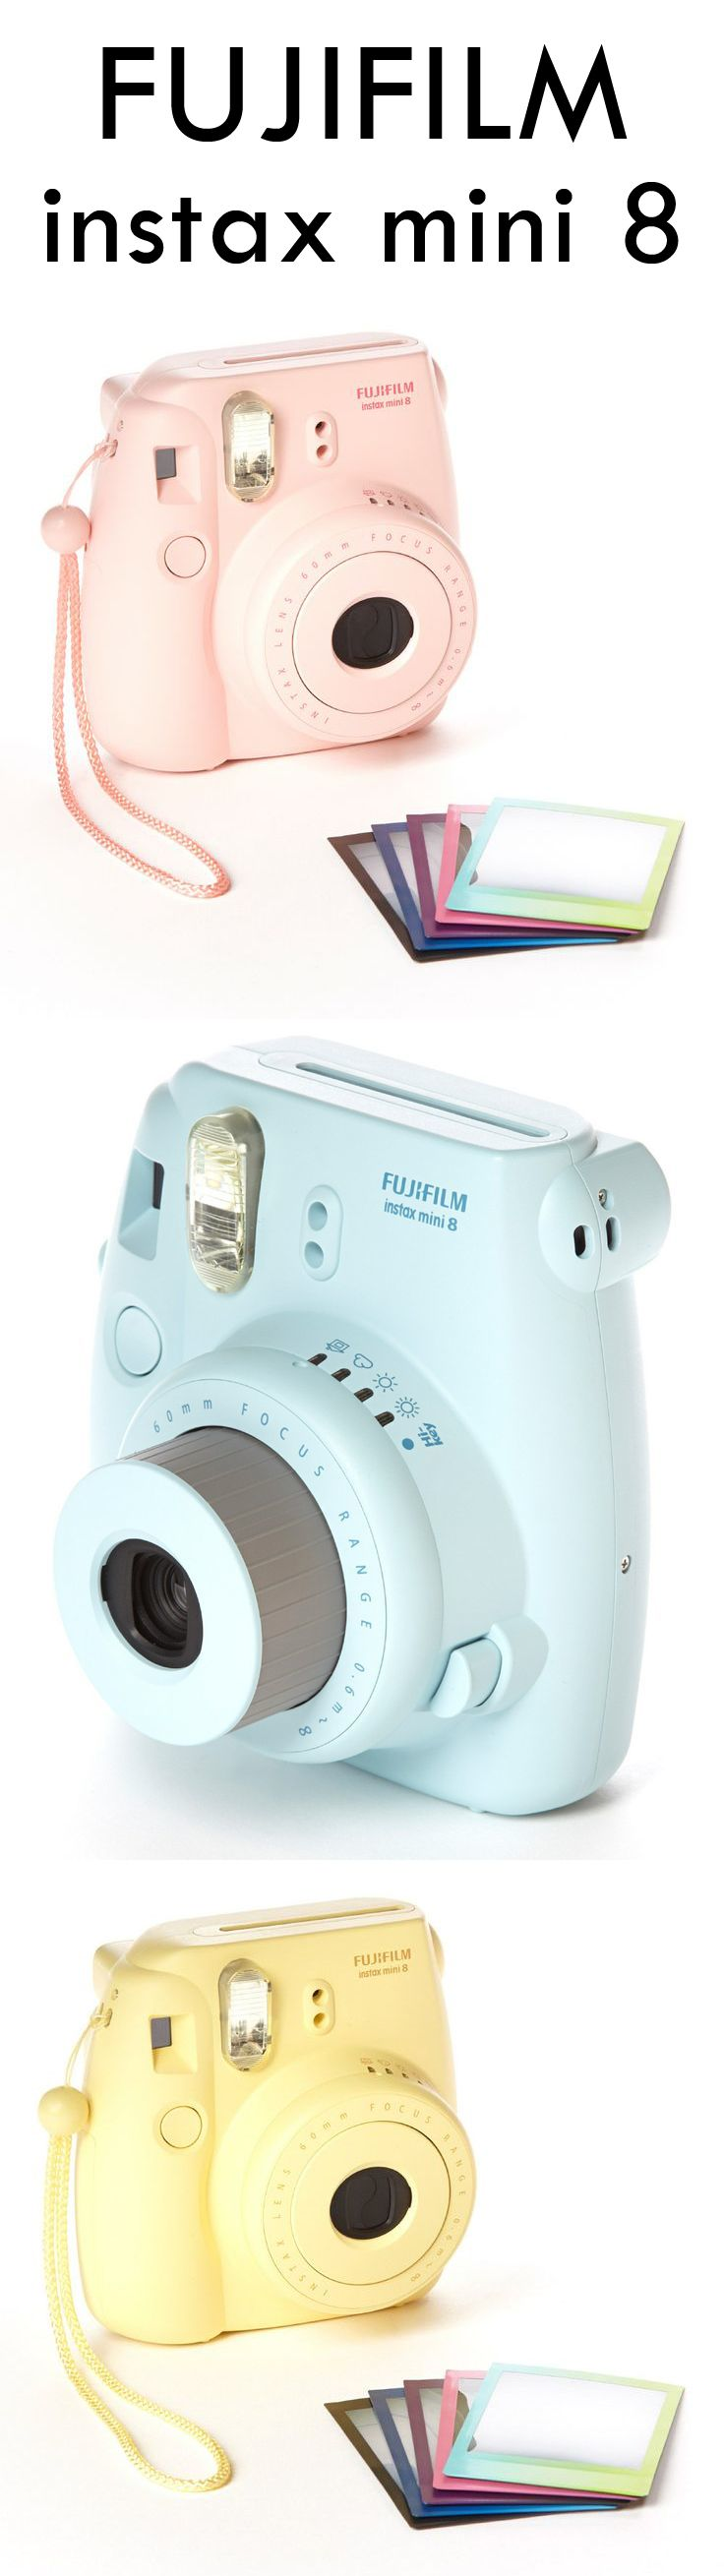 Cute Camera: Fujifilm Instax Mini 8 Camera - a cute gift idea!!